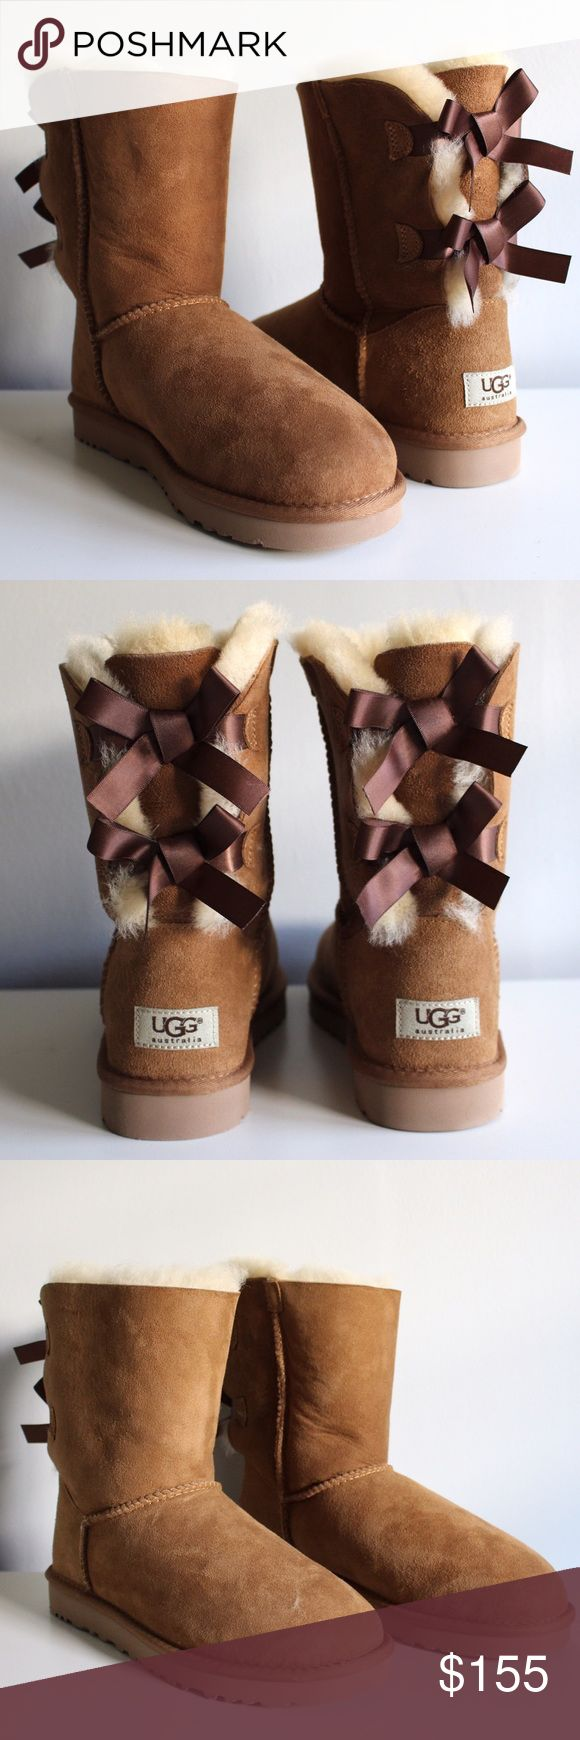 UGGS Soft, comfy, chestnut Australian UGG's with bailey bow. They have never been worn before and are in mint condition with the original box it came in, all for a GREAT deal! UGG Shoes